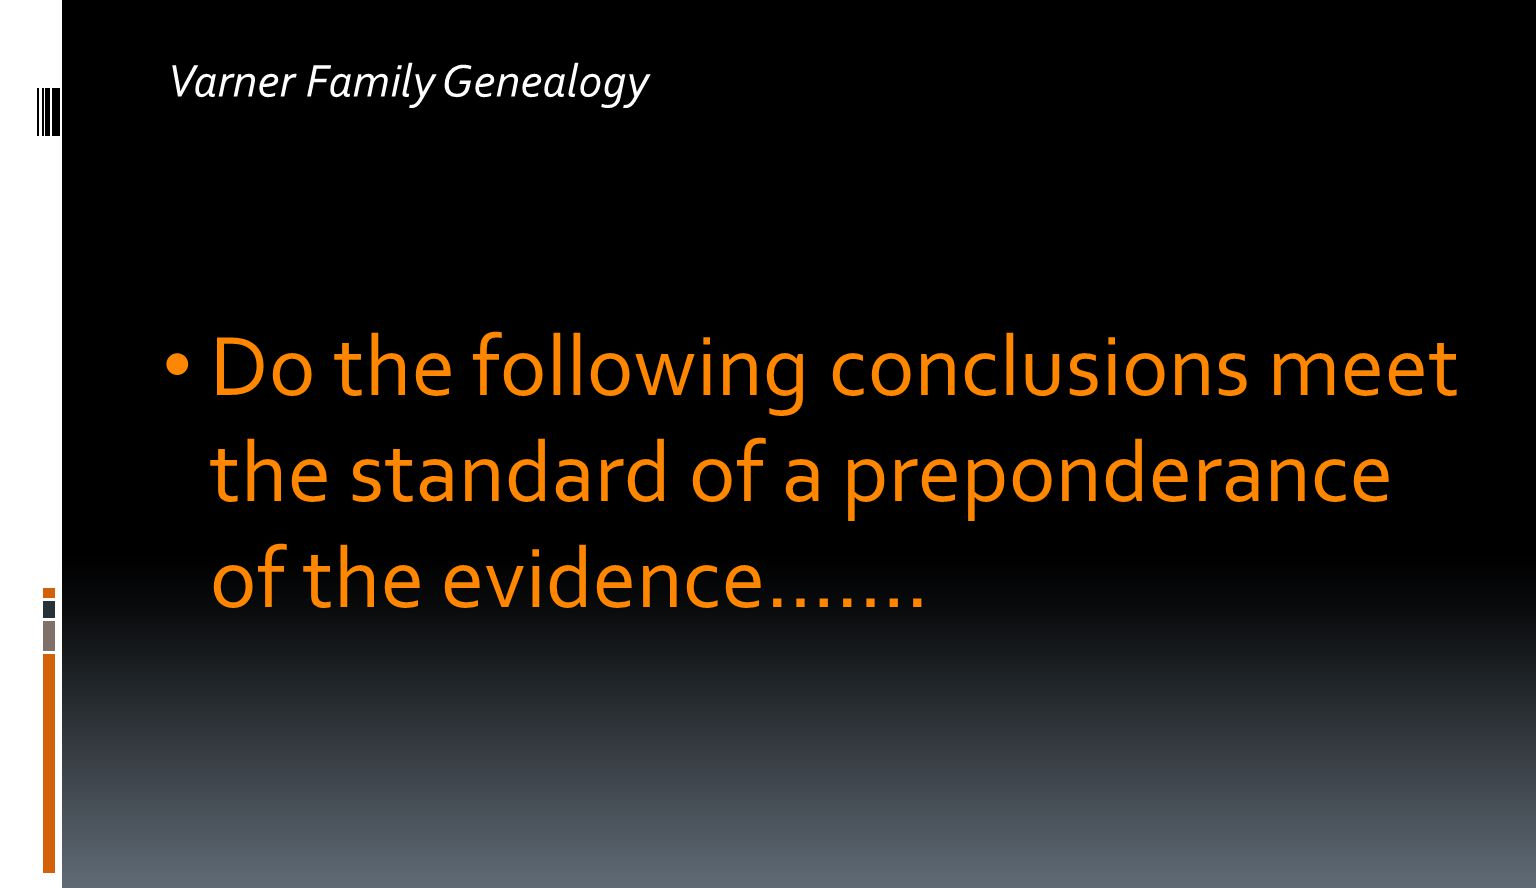 Varner Family Genealogy Do the following conclusions meet the standard of a preponderance of the evidence…….